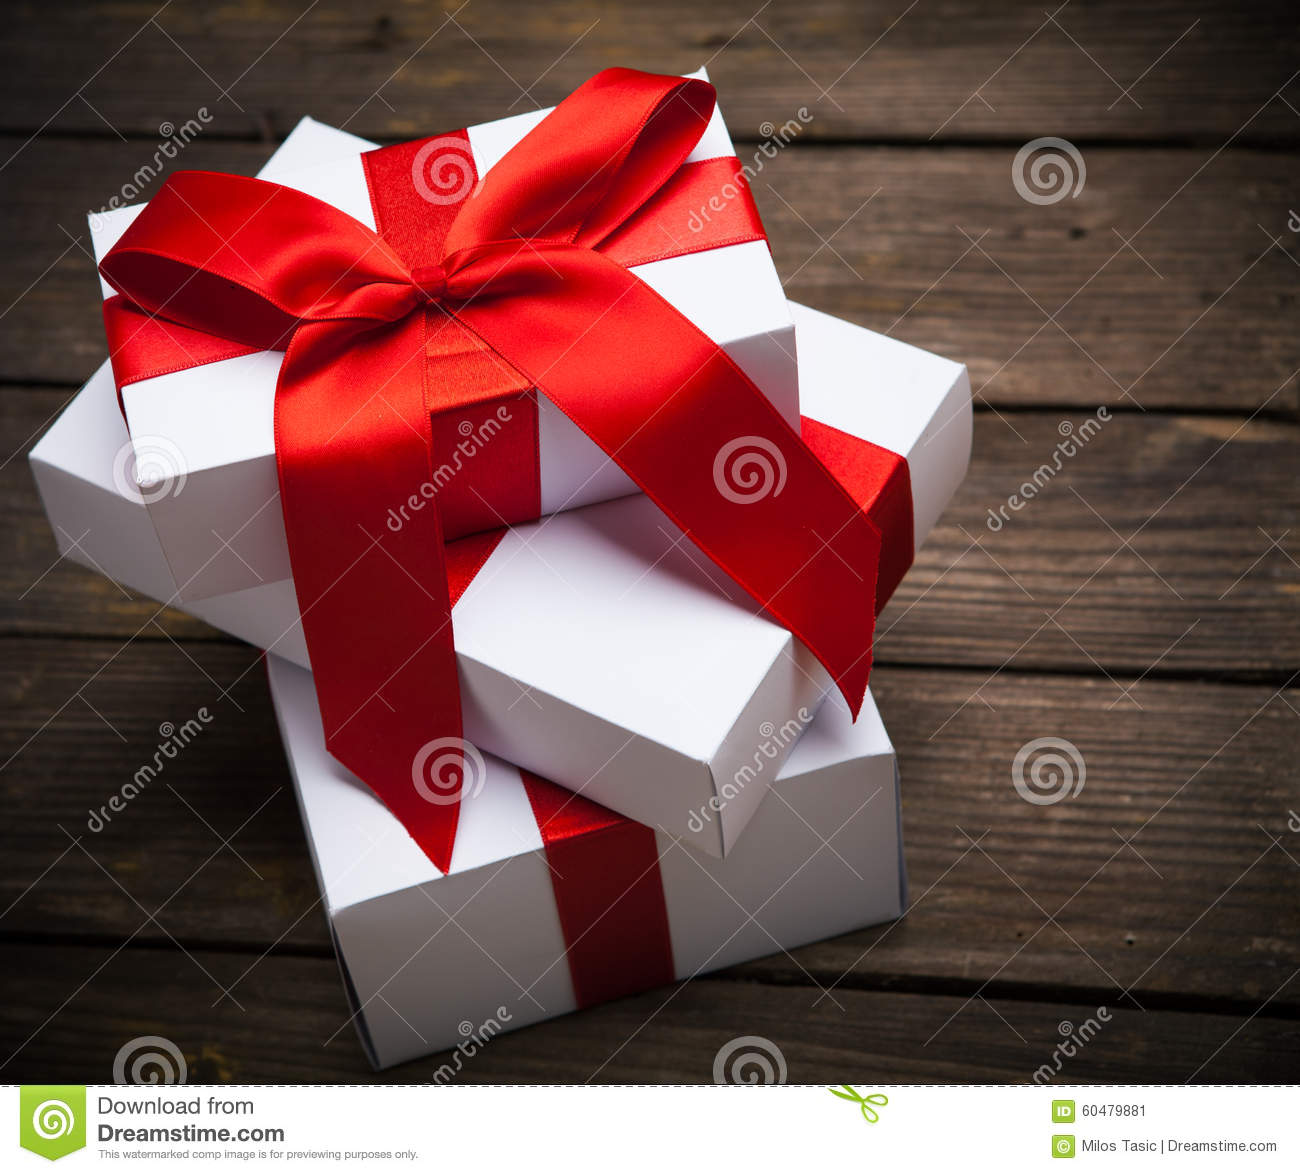 Stack of white Christmas presents on dark wood background